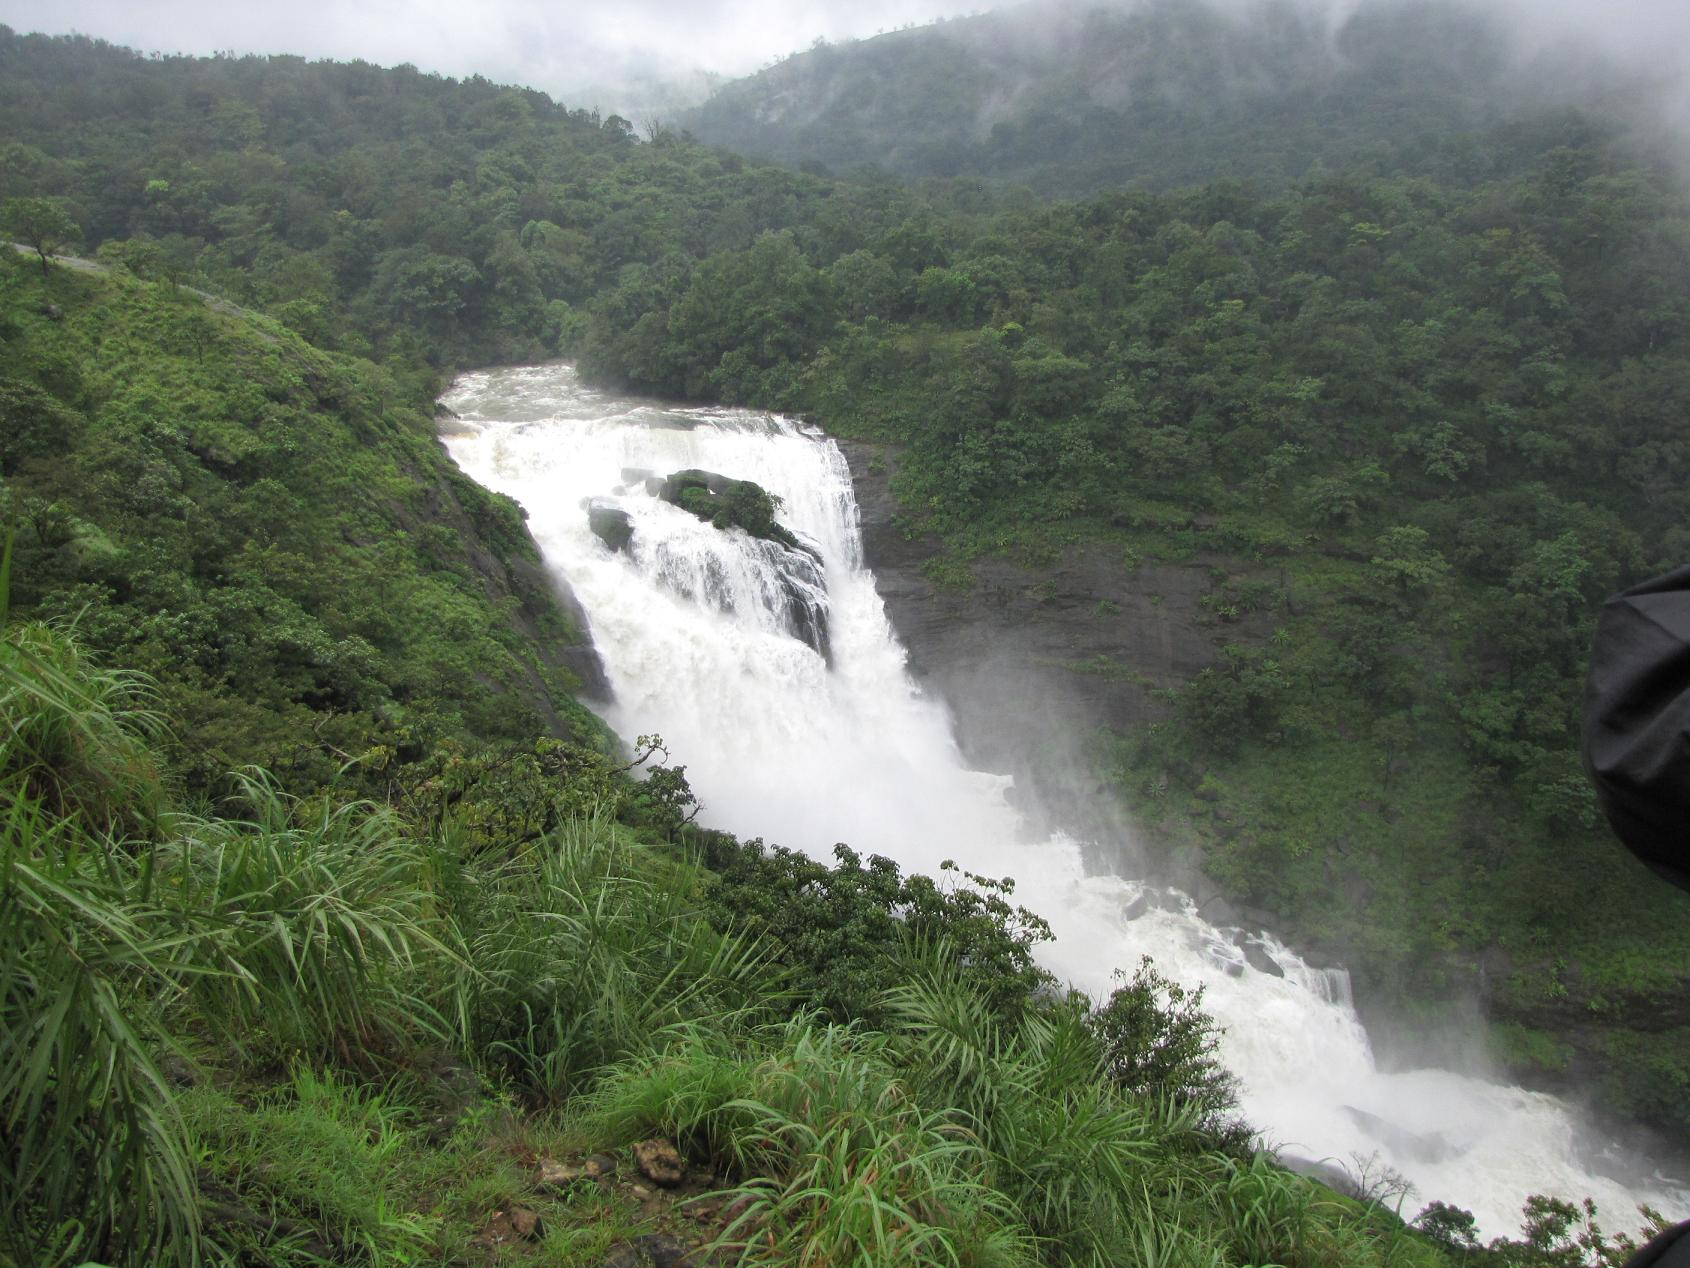 Another view of the majestic Mallahalli falls in Coorg